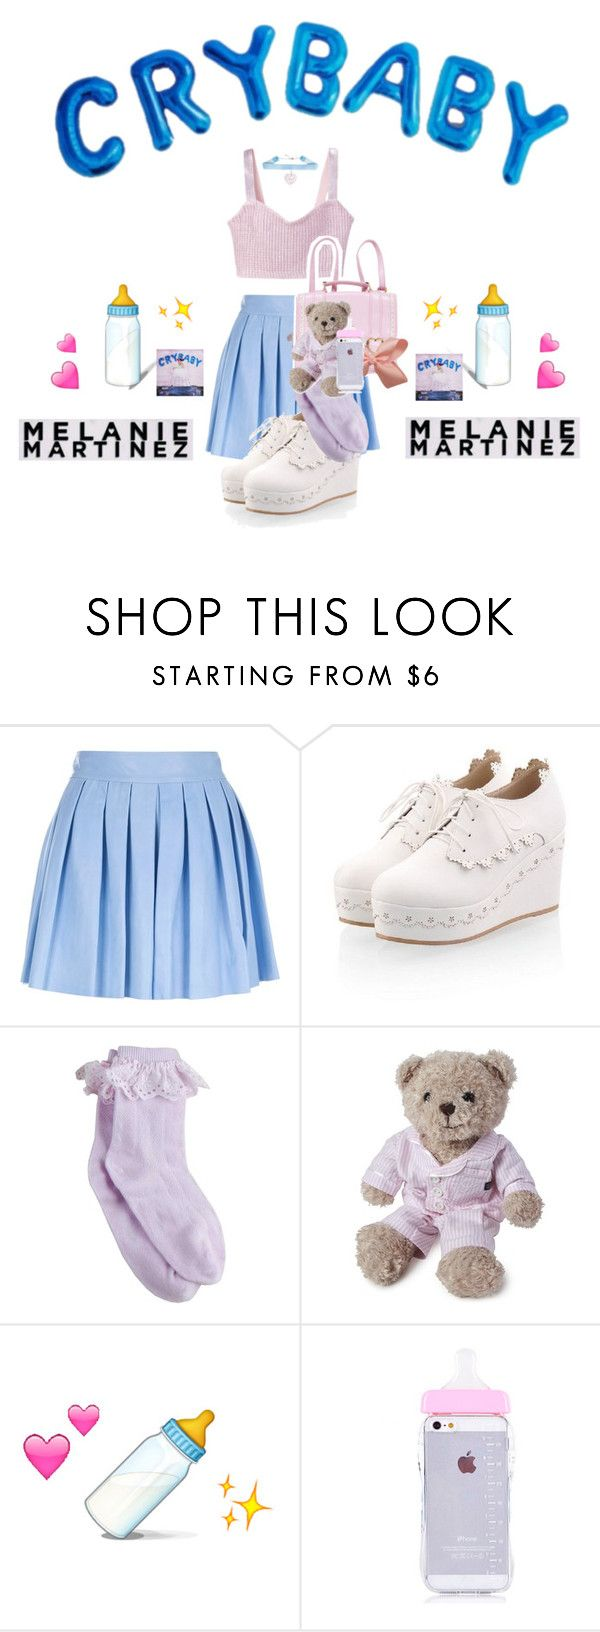 """MELANIE MARTINEZ "" by jasloves5sos on Polyvore featuring Alice + Olivia, Lexington, cute, tumblr, melaniemartinez and Crybaby"